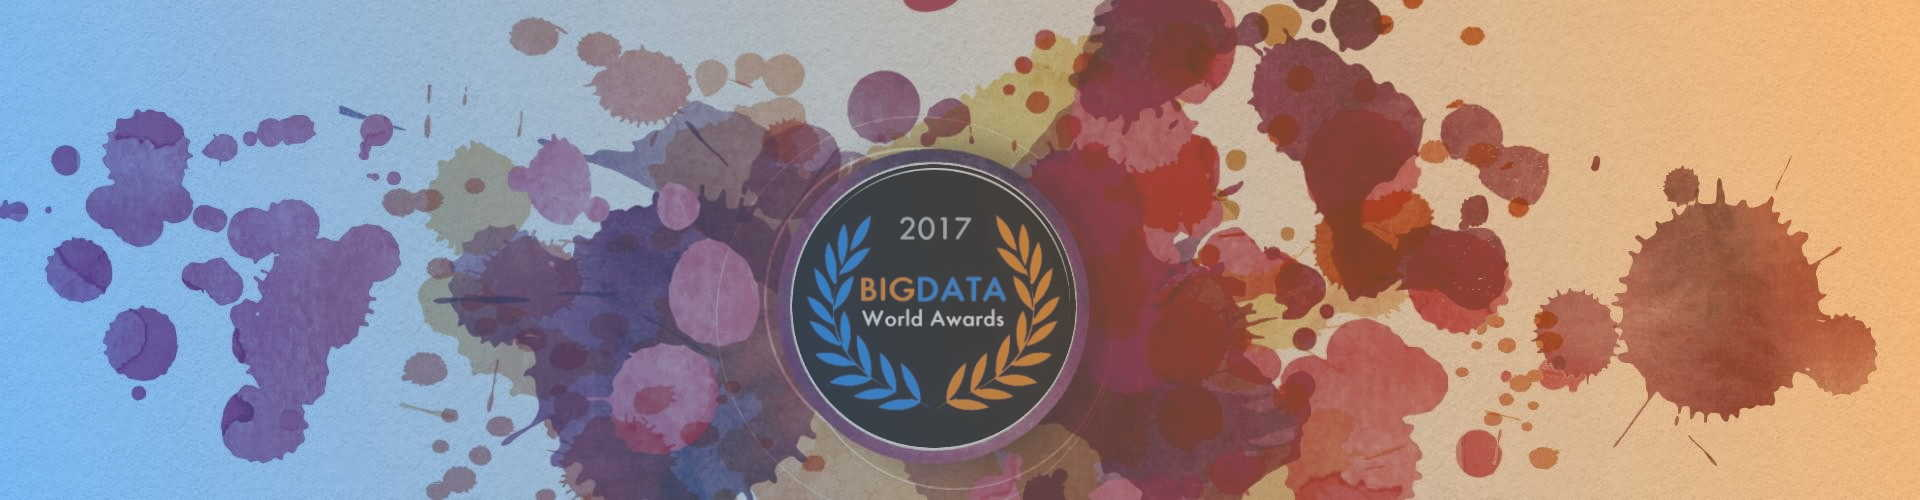 BIG DATA WORLD AWARDS